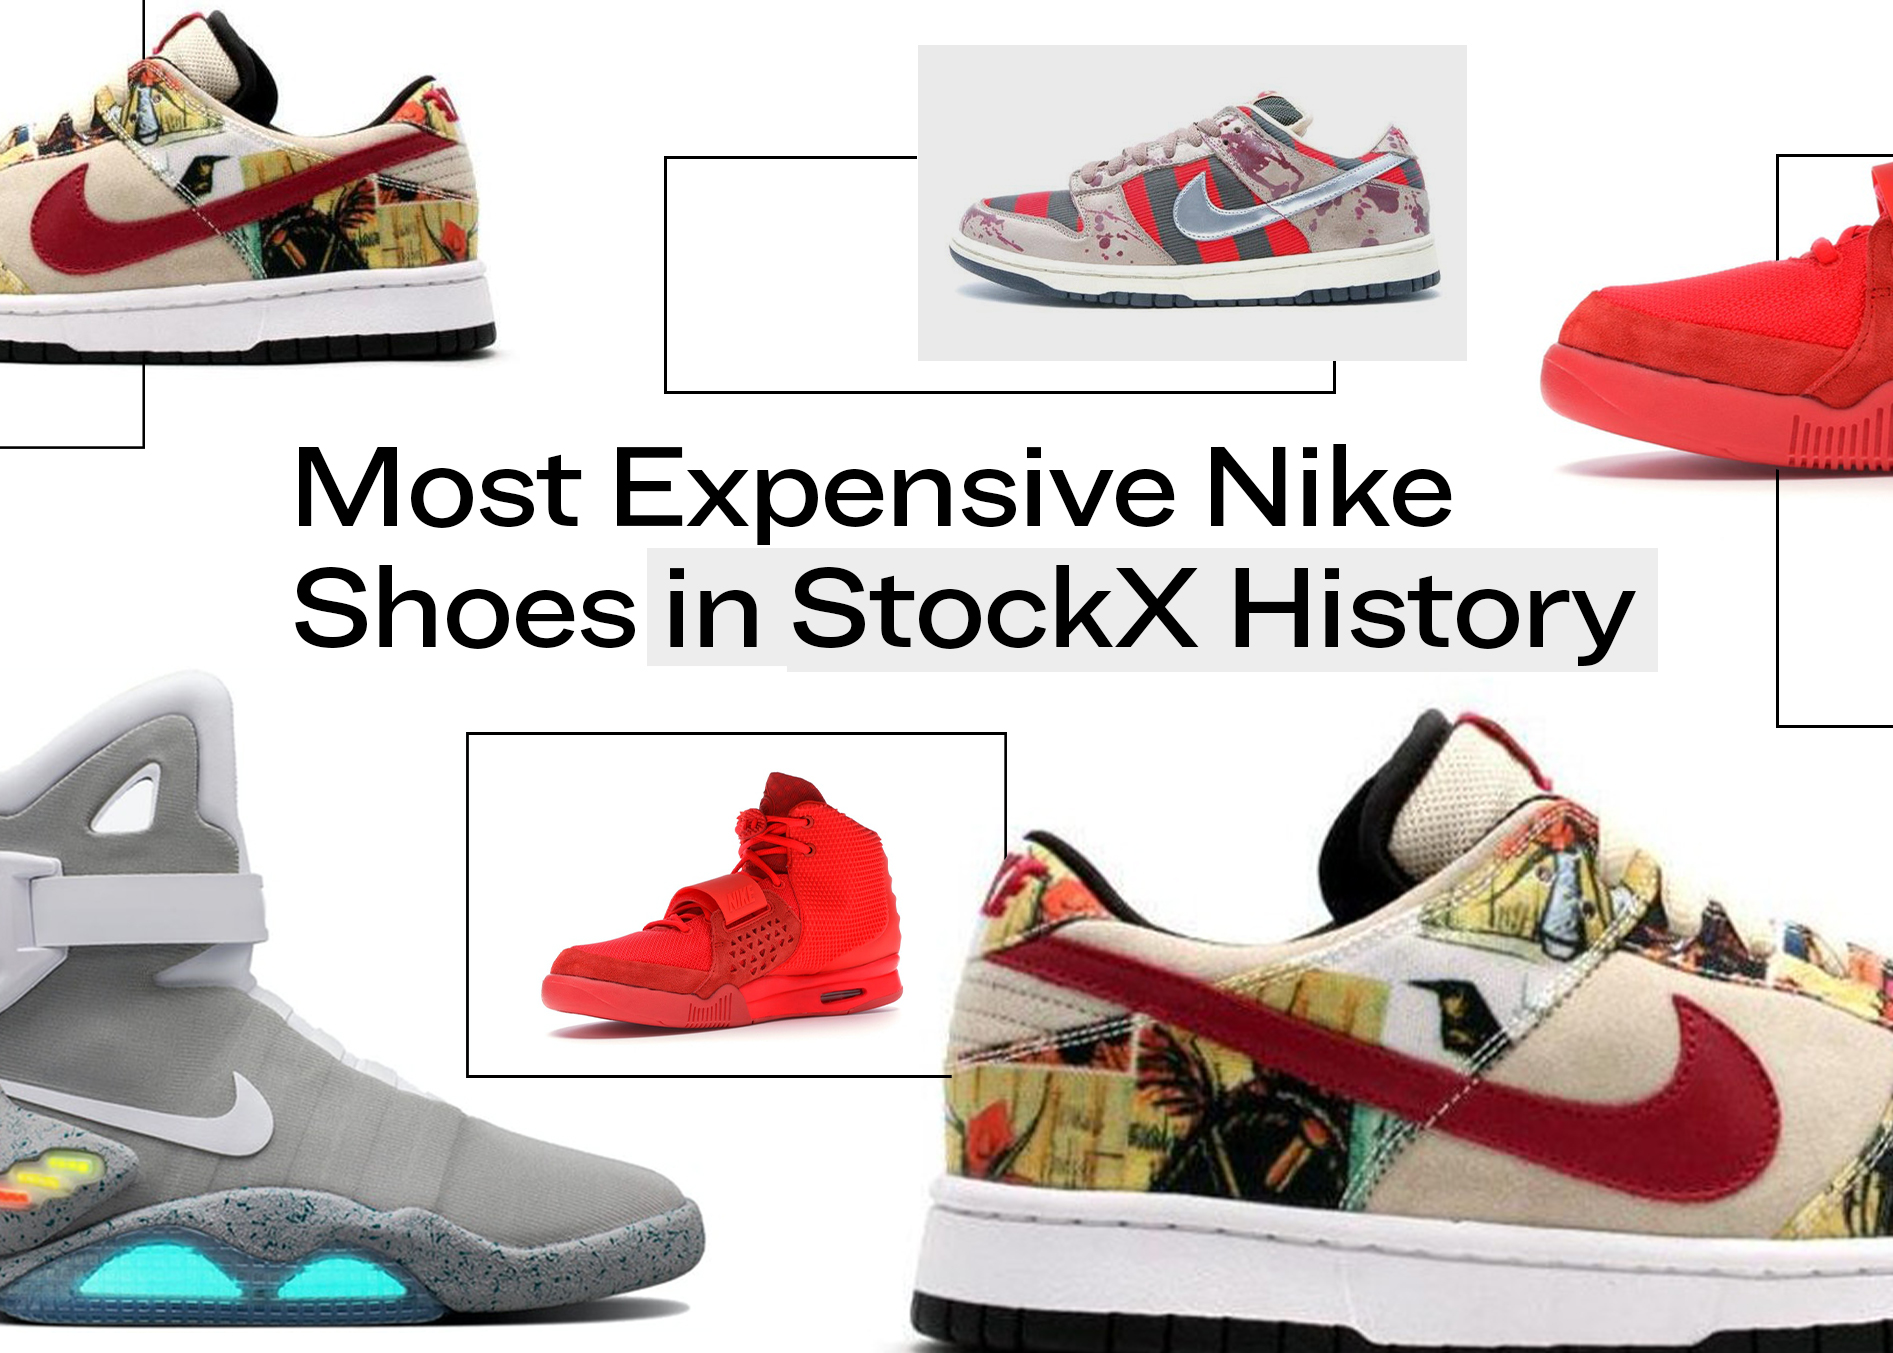 Escritura Automáticamente Audaz  Most Expensive Nike Shoes in StockX History - StockX News